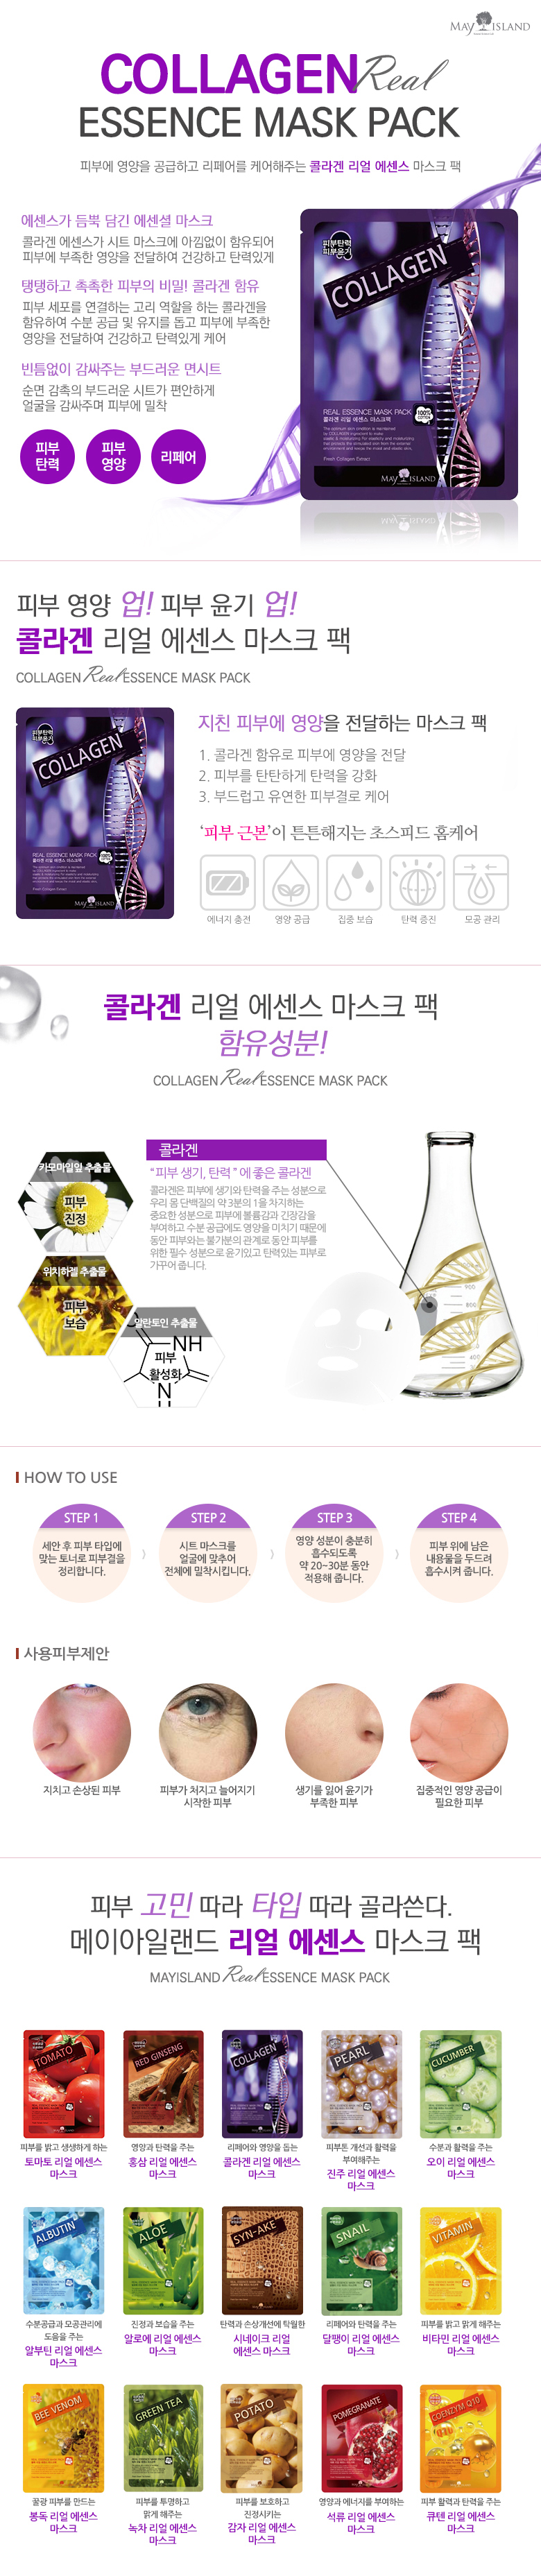 MAY_ISLAND_Collagen_Real_Essence_Mask_Pa